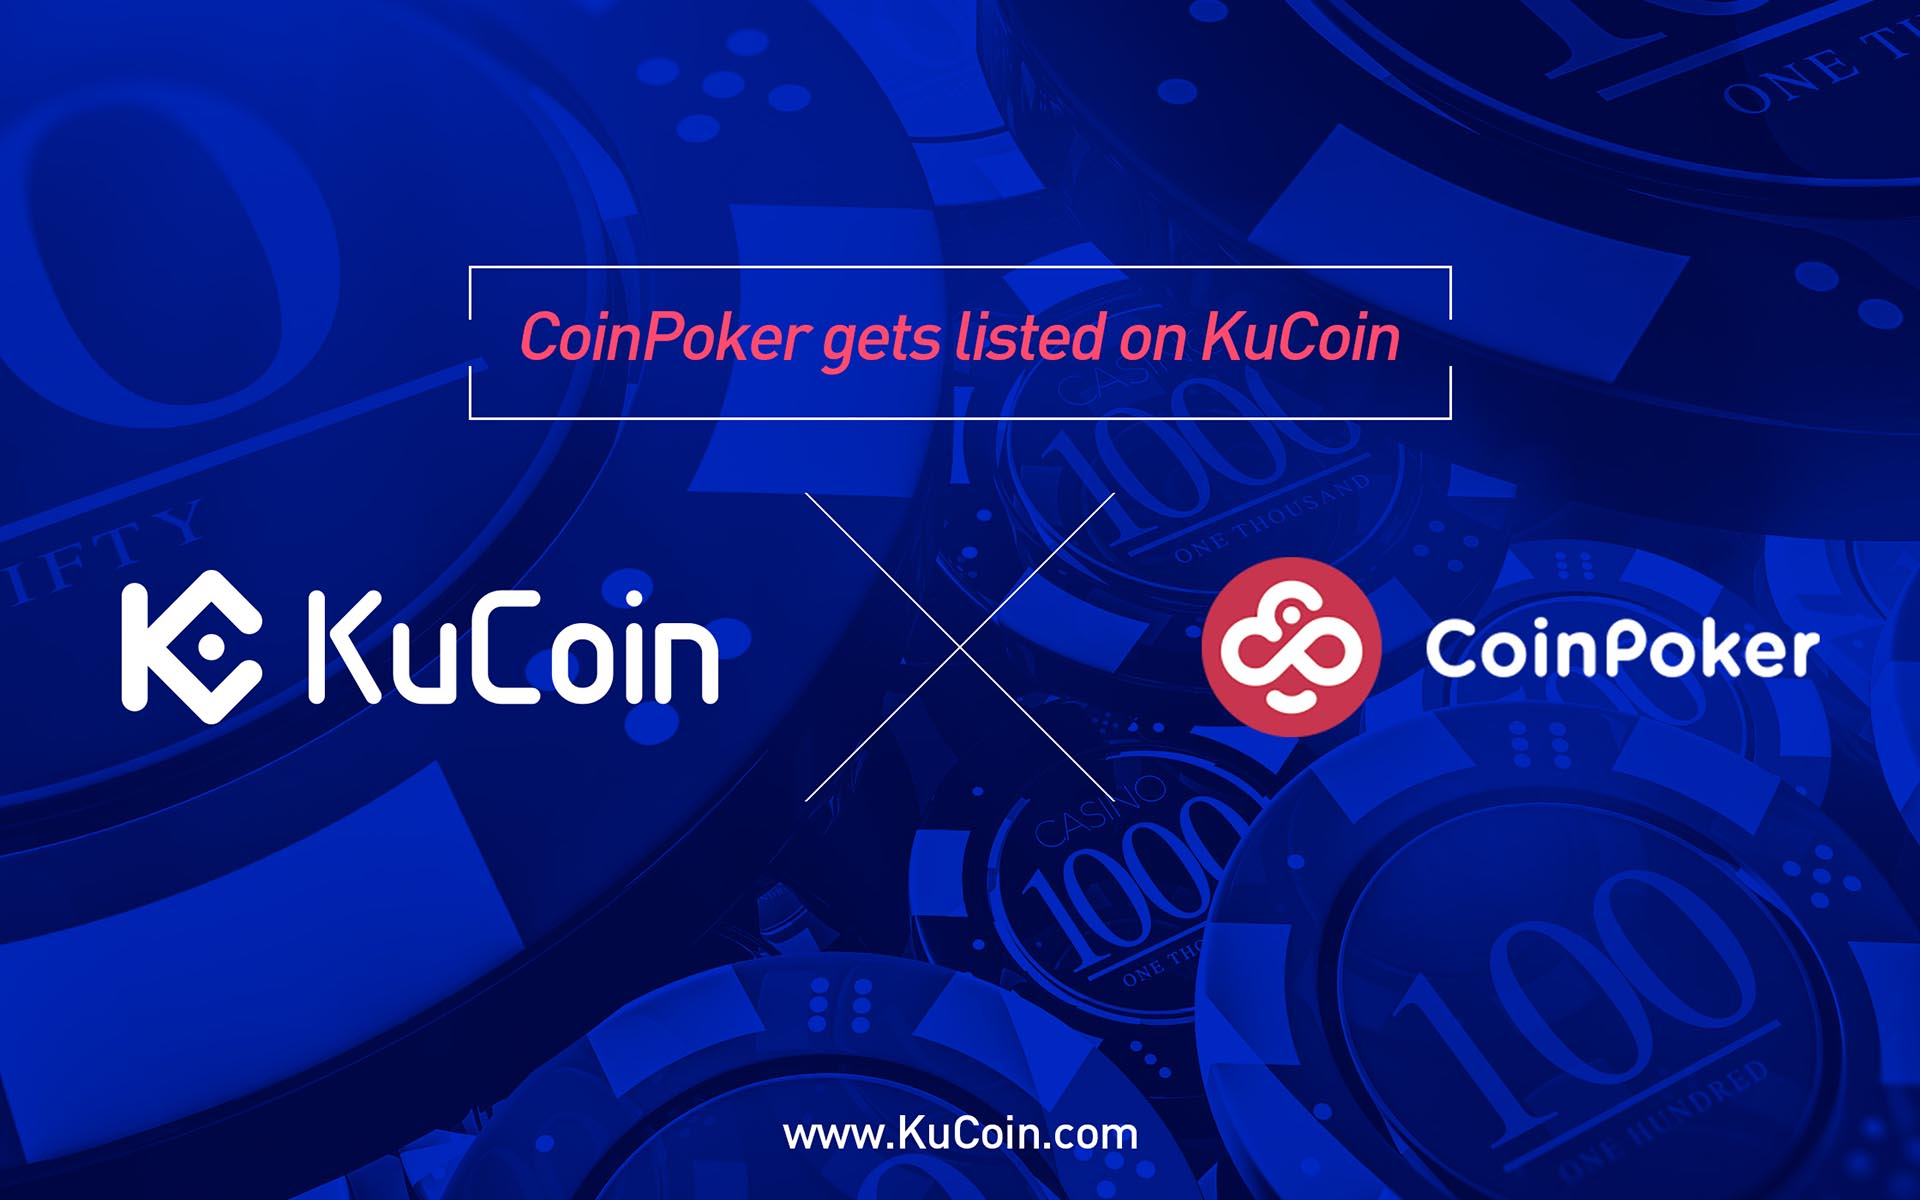 Coinpoker Gets Listed On KuCoin Exchange